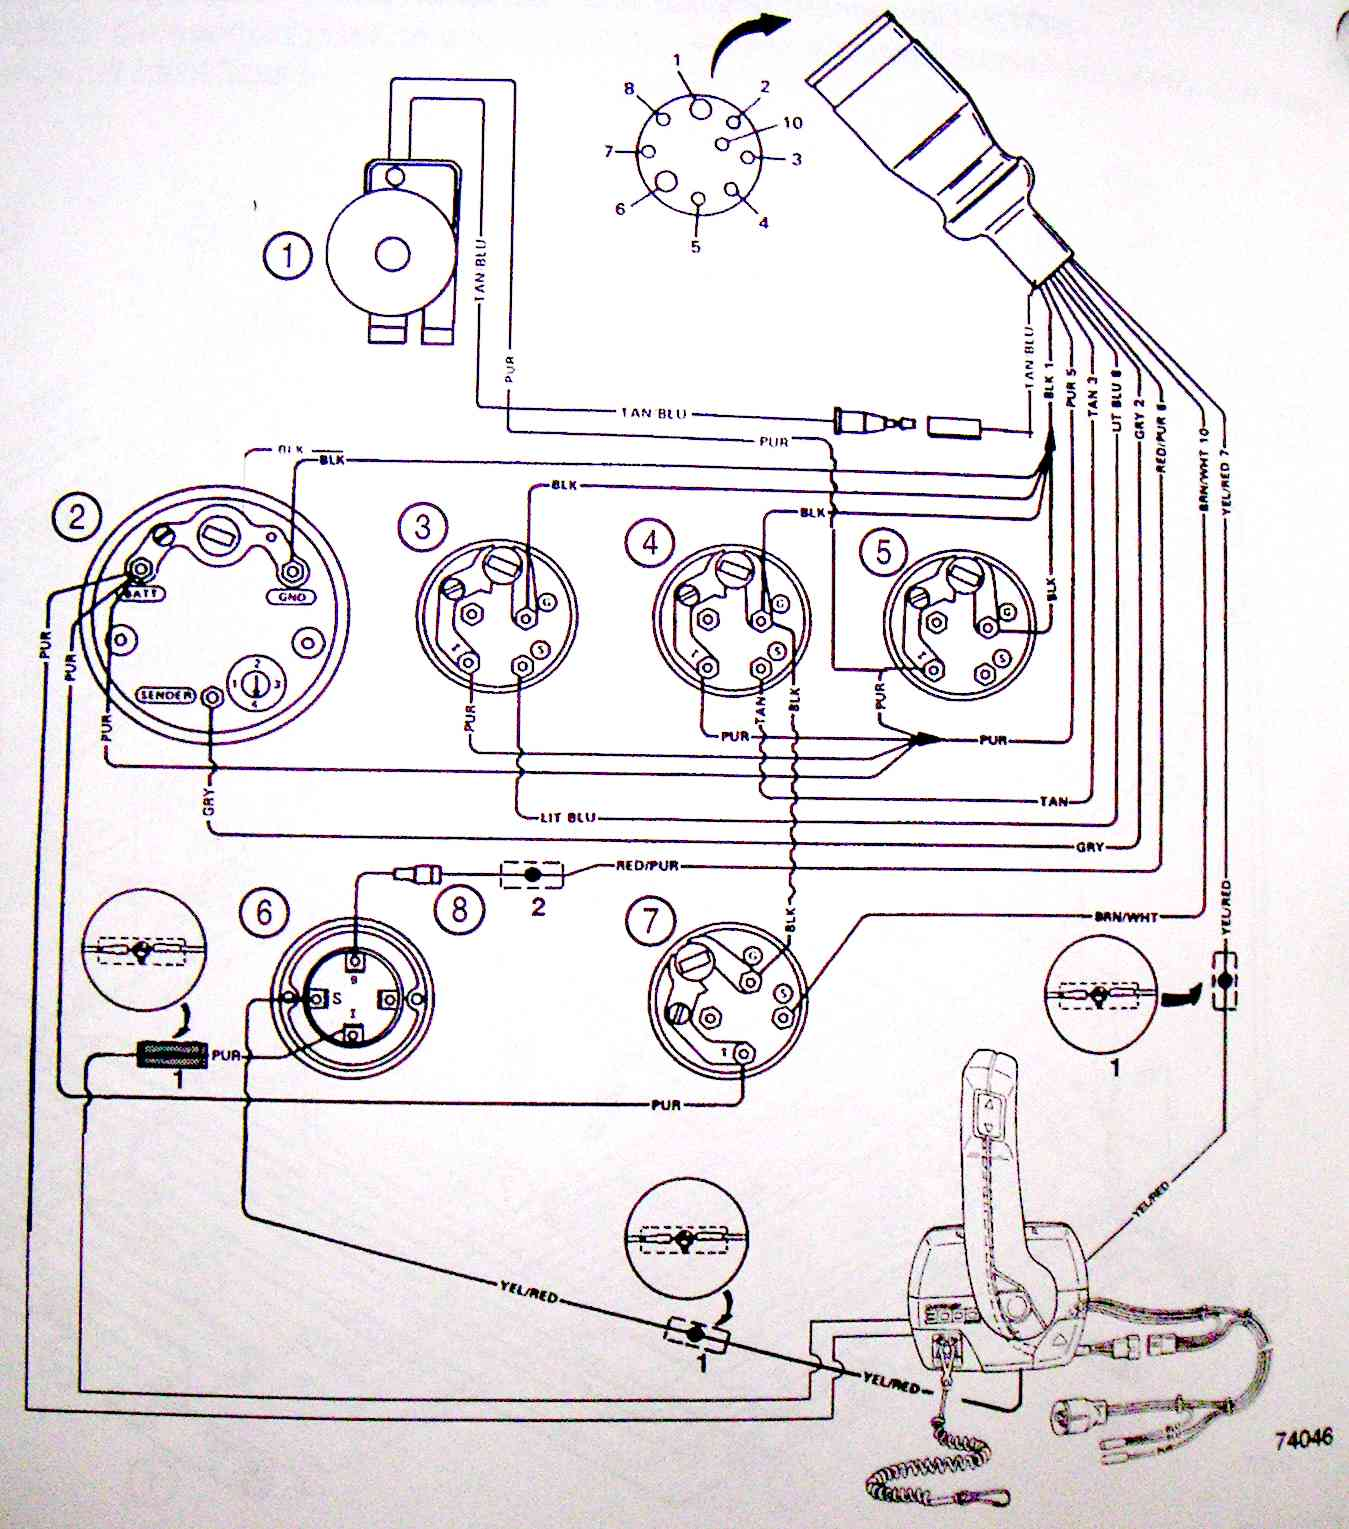 BoatHarness74046 wiring diagram for mercruiser 140 the wiring diagram mercruiser alpha one wiring diagram at bakdesigns.co